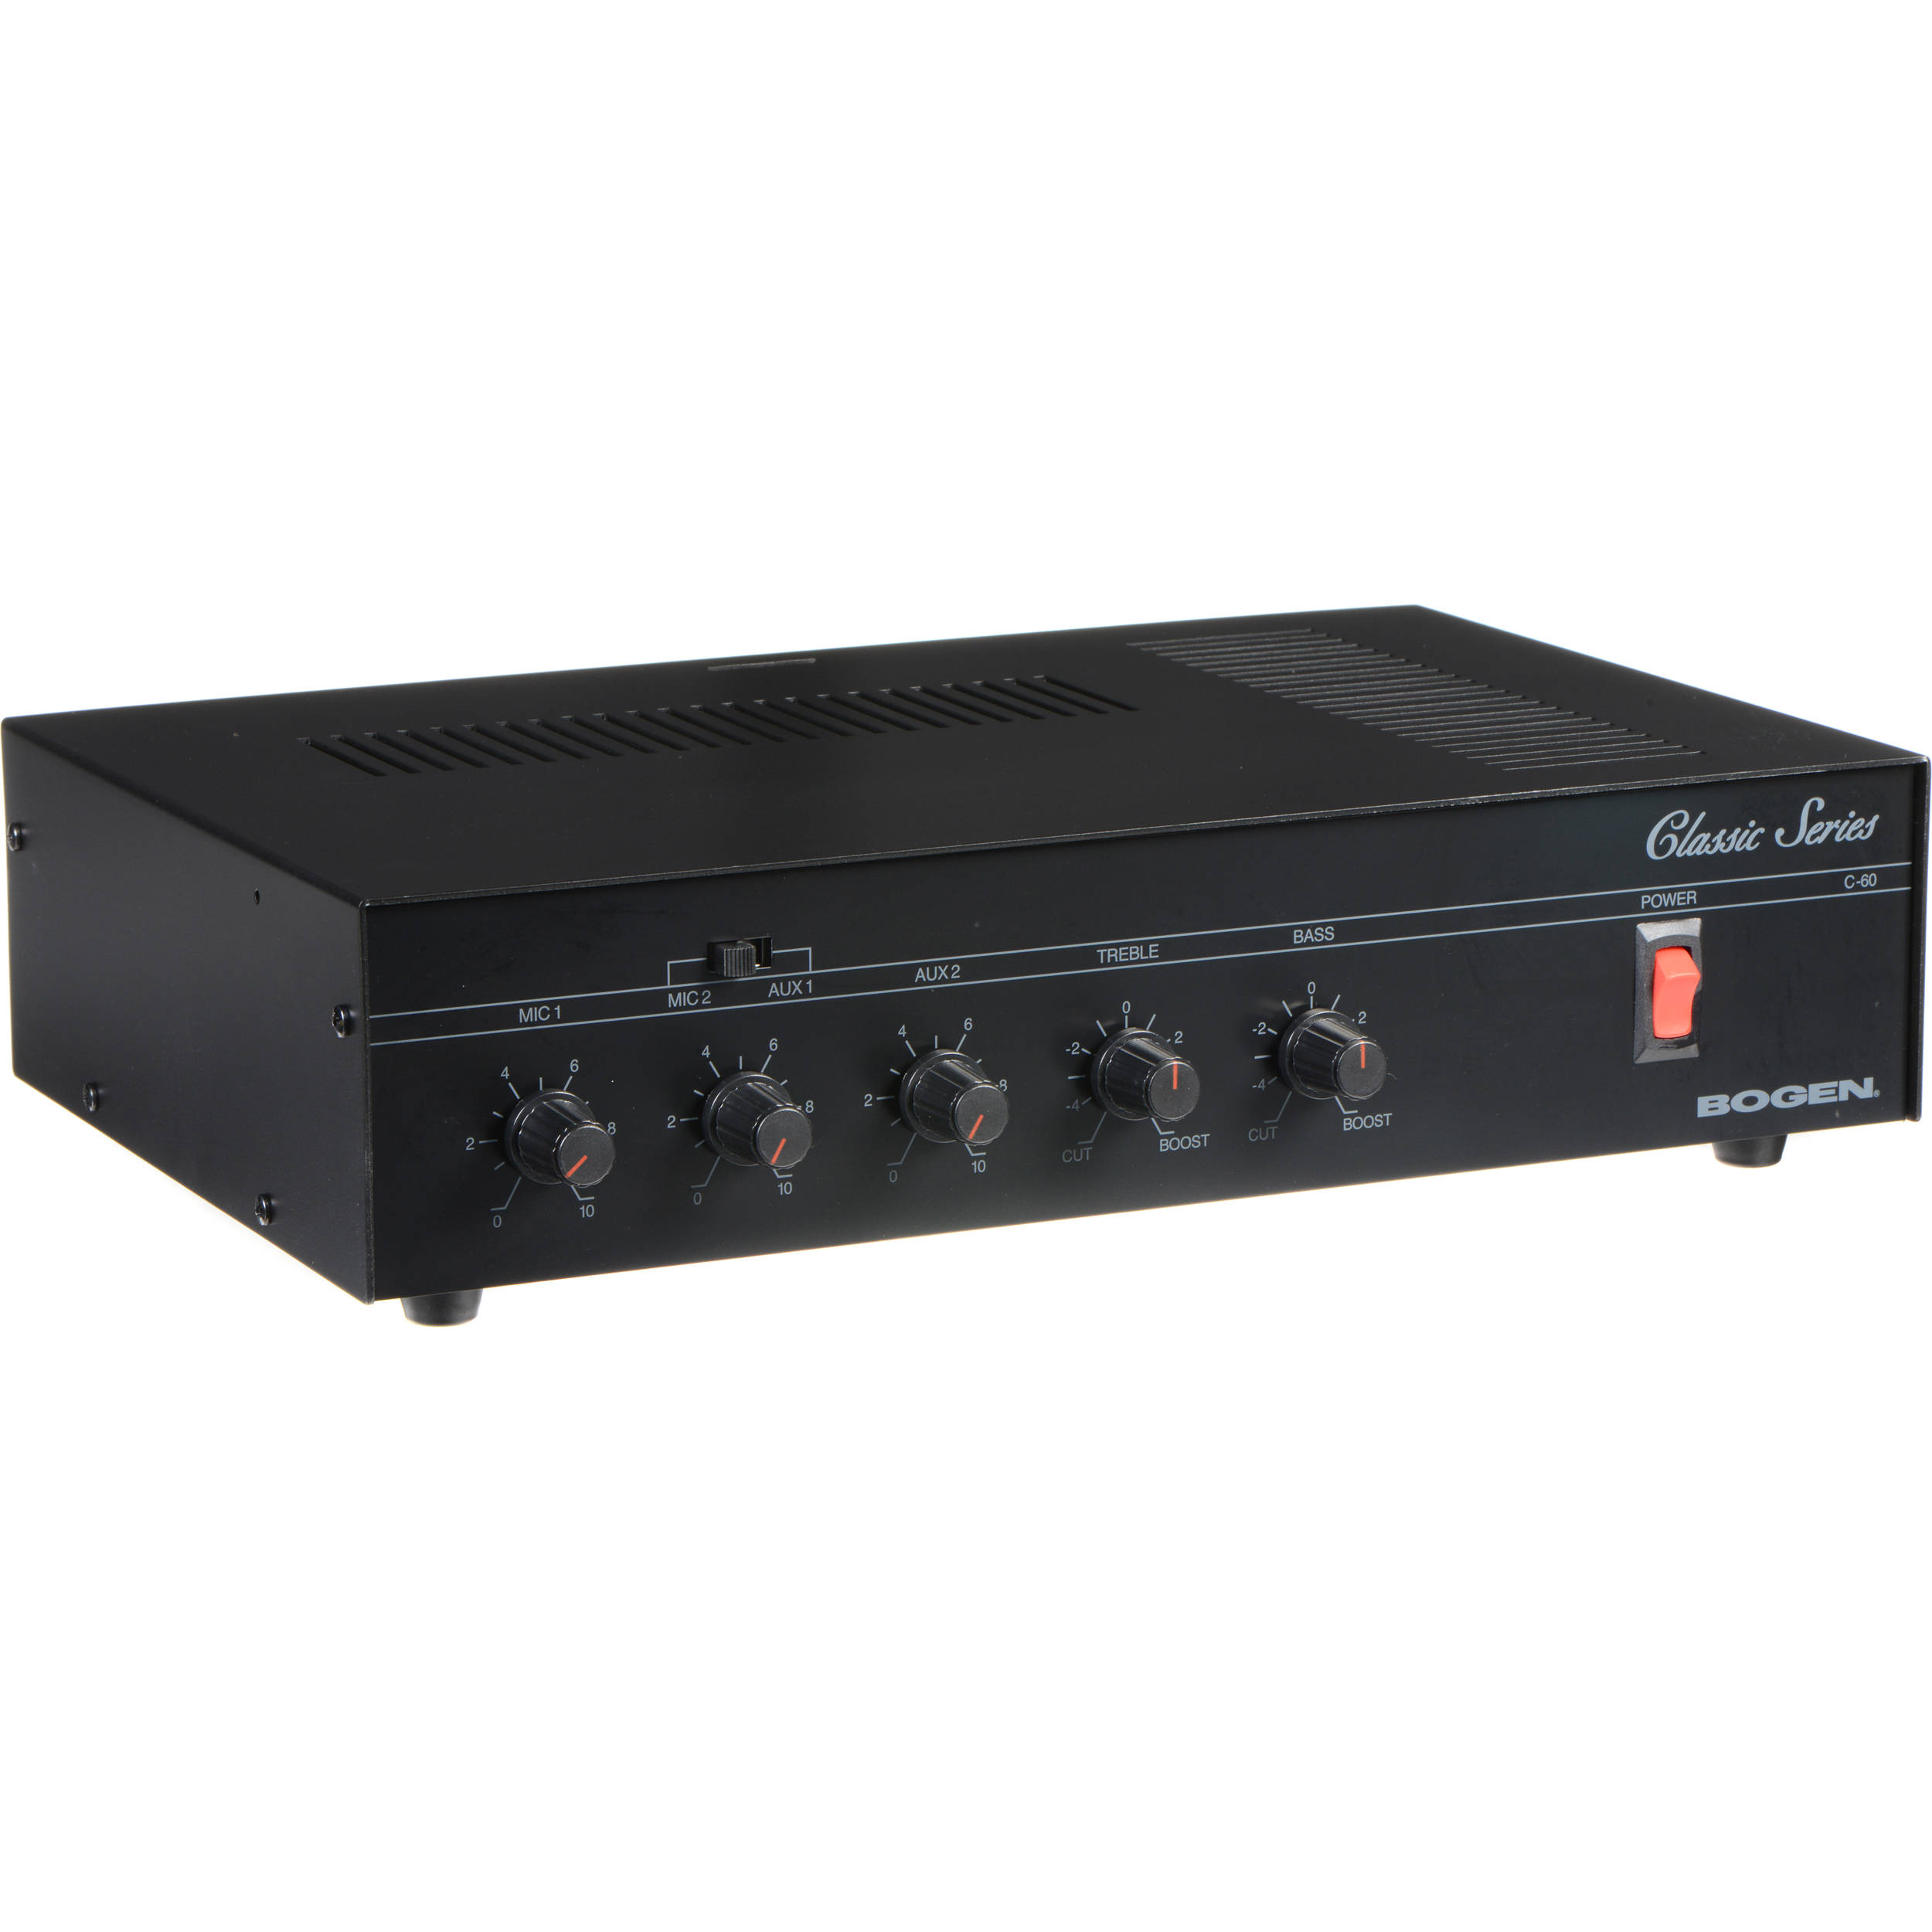 Bogen Communications C60 Classic Series Public Address Amplifier 60W